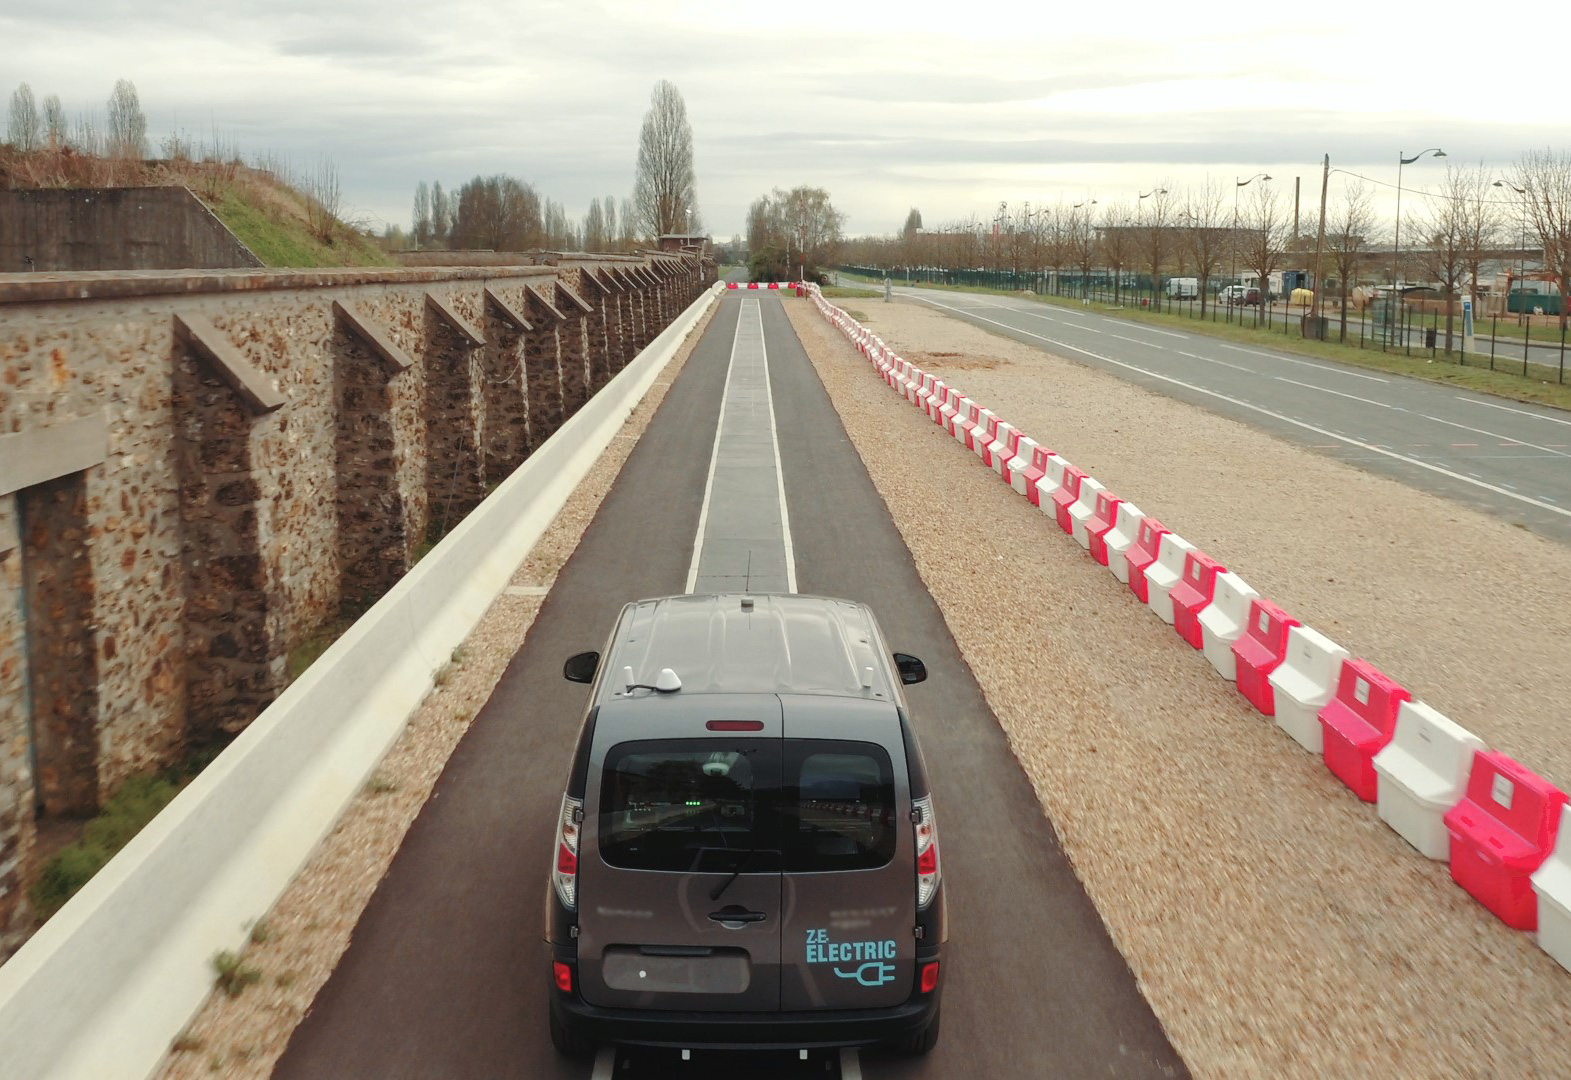 RENAULT-KANGOO-Z.E.-A-FUTURE-OF-NEVER-PLUGGING-IN-ELECTRIC-VEHICLES-180517-(2).jpg